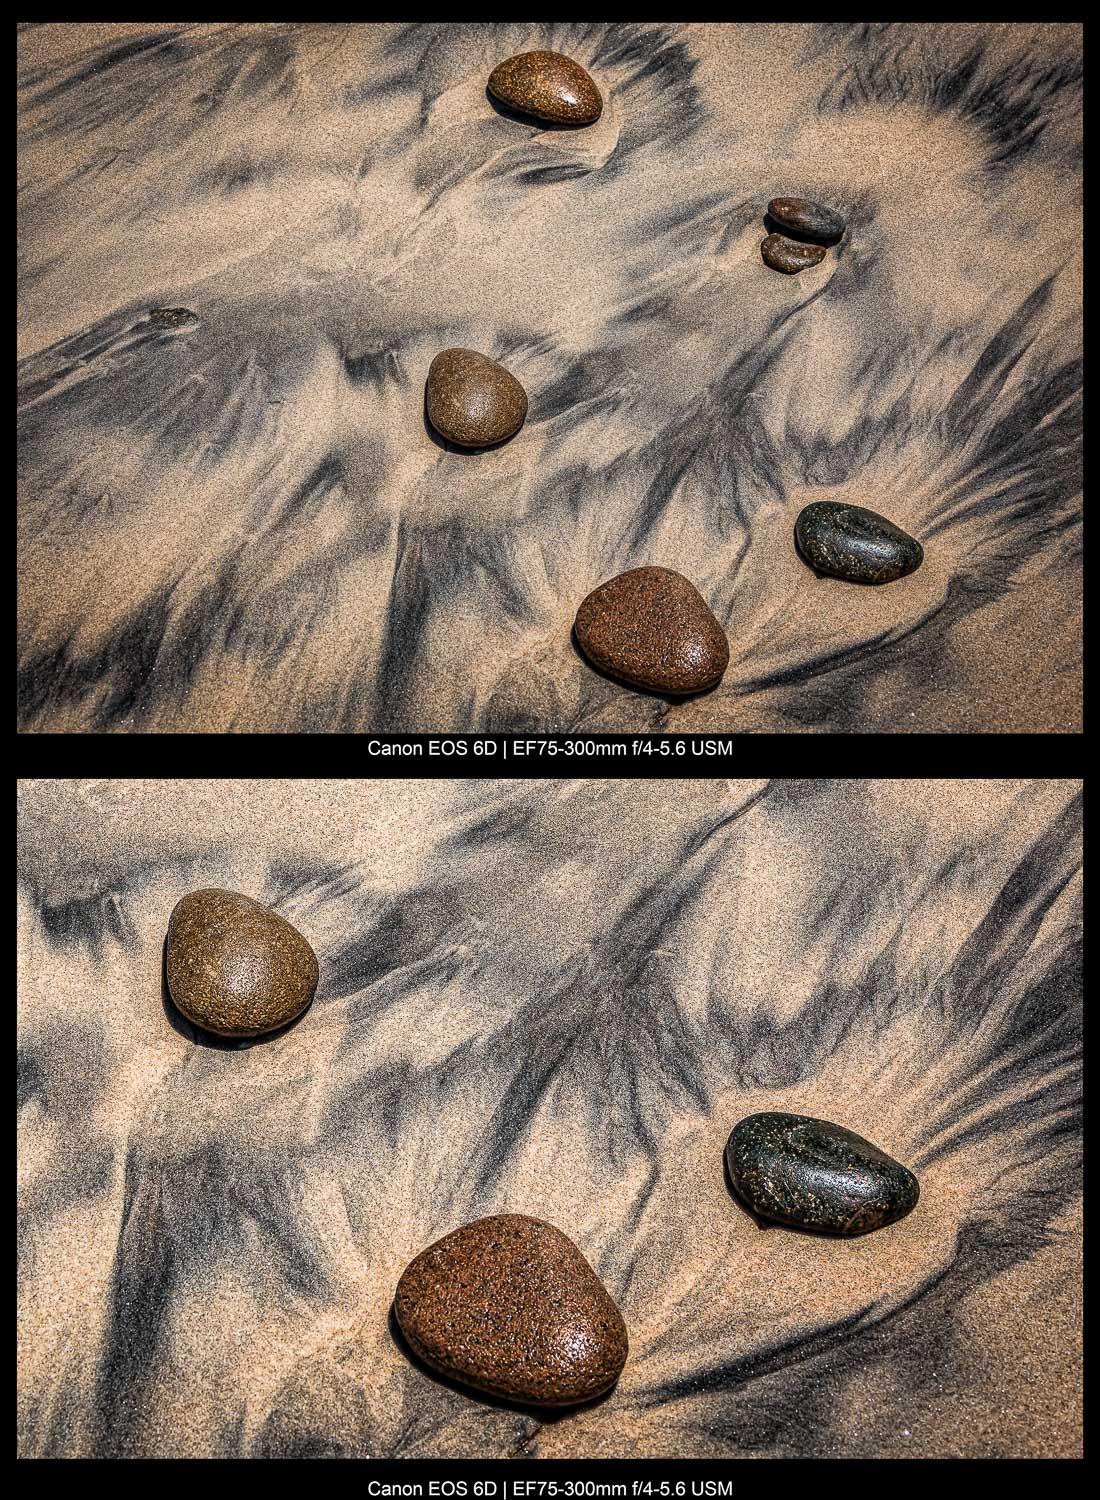 groups of rocks on the sand